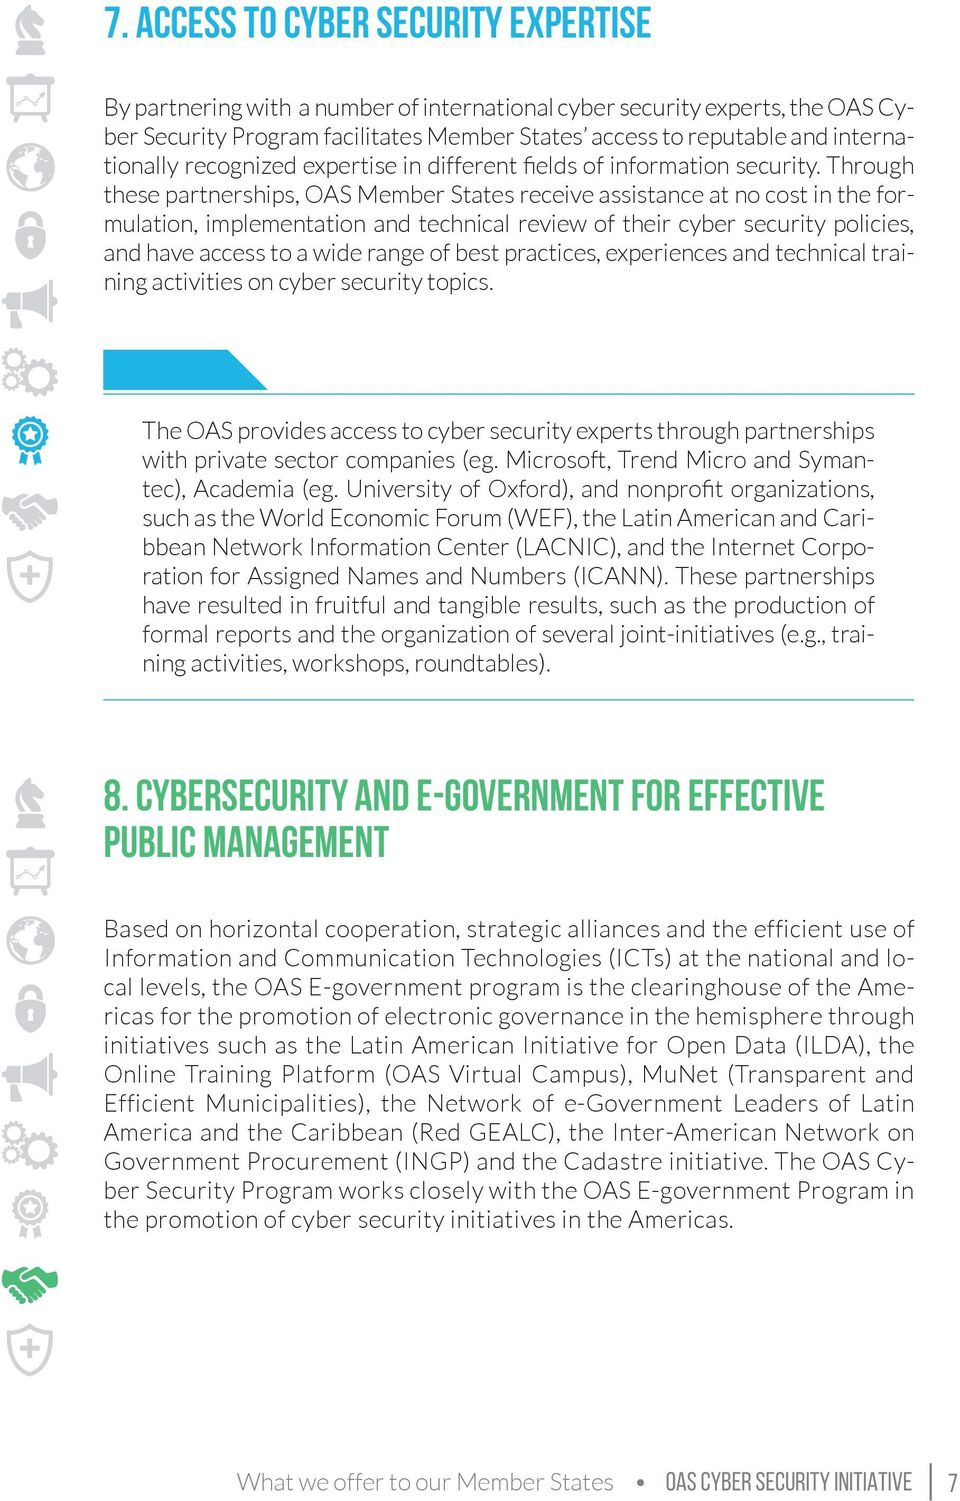 Through these partnerships, OAS Member States receive assistance at no cost in the formulation, implementation and technical review of their cyber security policies, and have access to a wide range